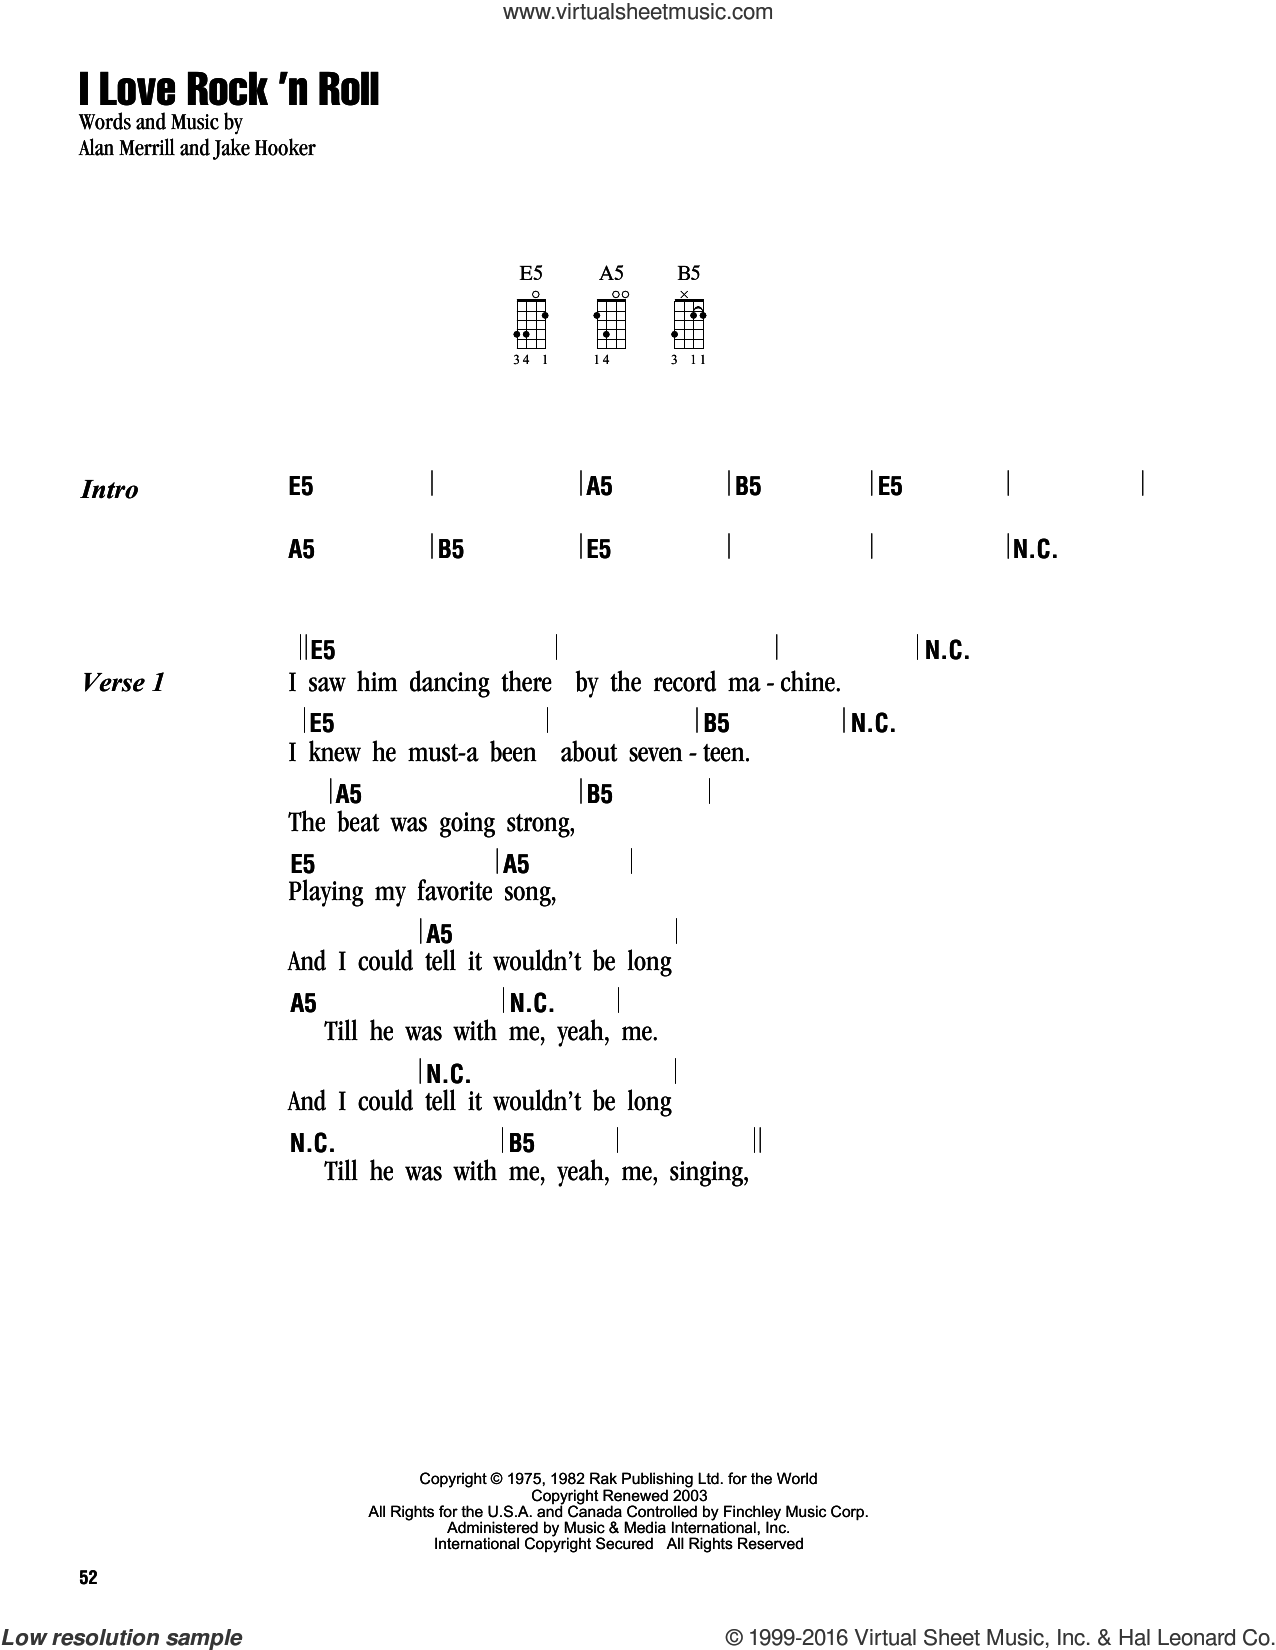 I Love Rock 'N Roll sheet music for ukulele (chords) by Jake Hooker